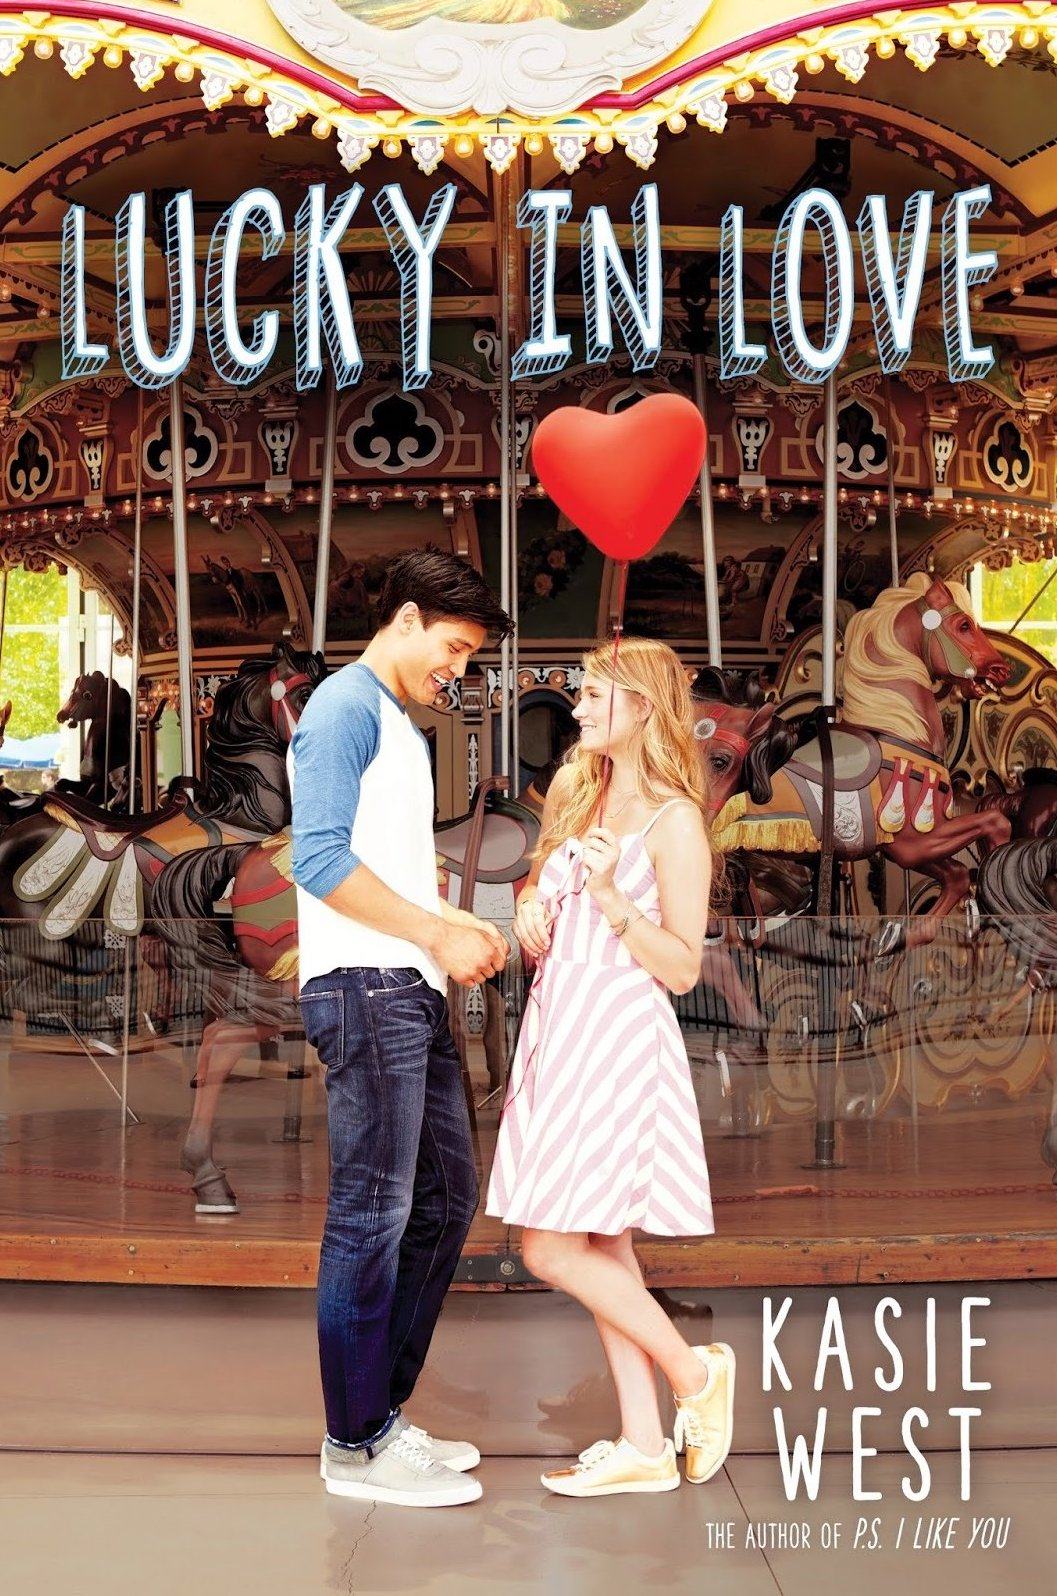 BWW Review: LUCKY IN LOVE by Kasie West